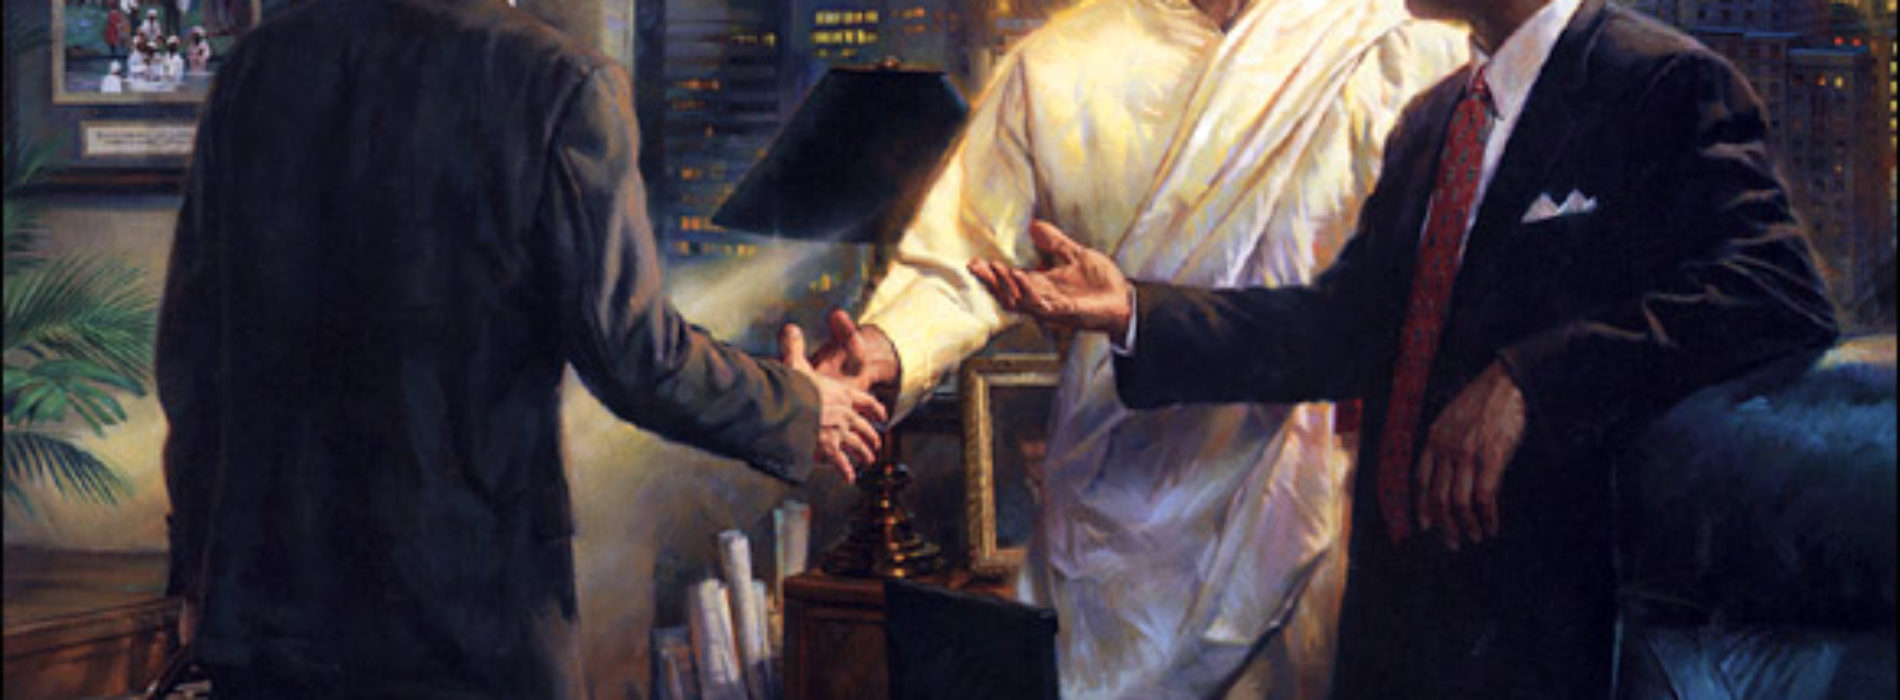 New Painting Reflects Christian Values in Business